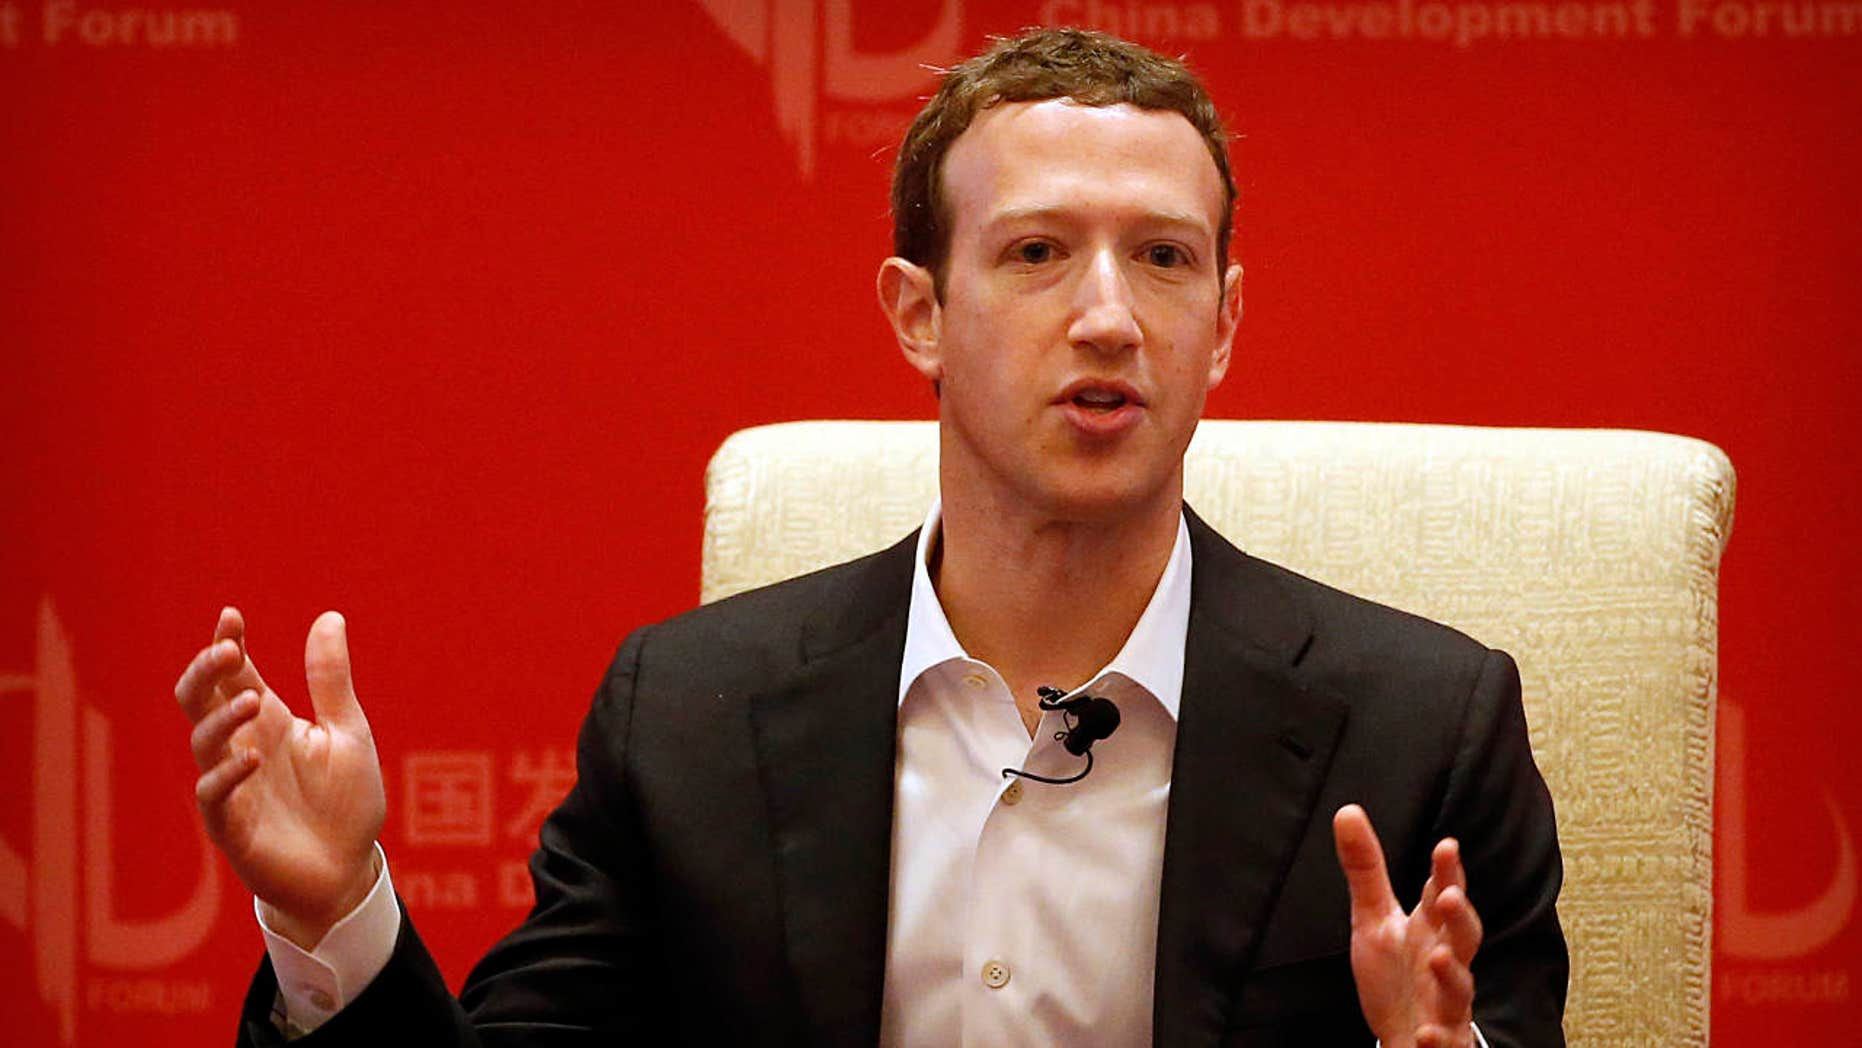 FILE - In this Saturday, March 19, 2016, file photo, Facebook CEO Mark Zuckerberg speaks during a panel discussion held as part of the China Development Forum at the Diaoyutai State Guesthouse in Beijing.